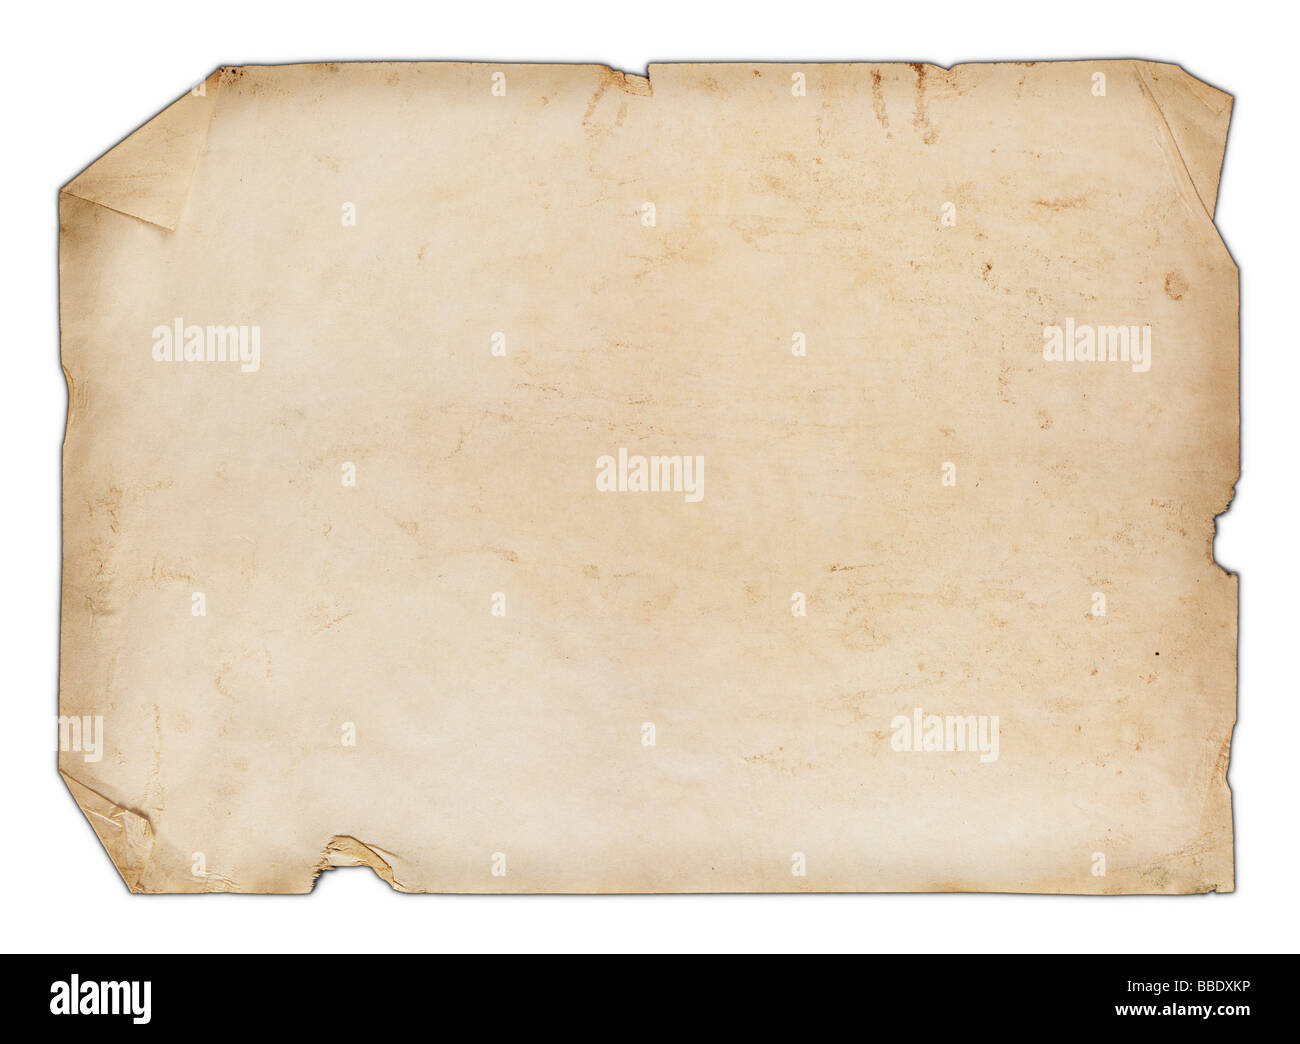 Old blank paper - Stock Image